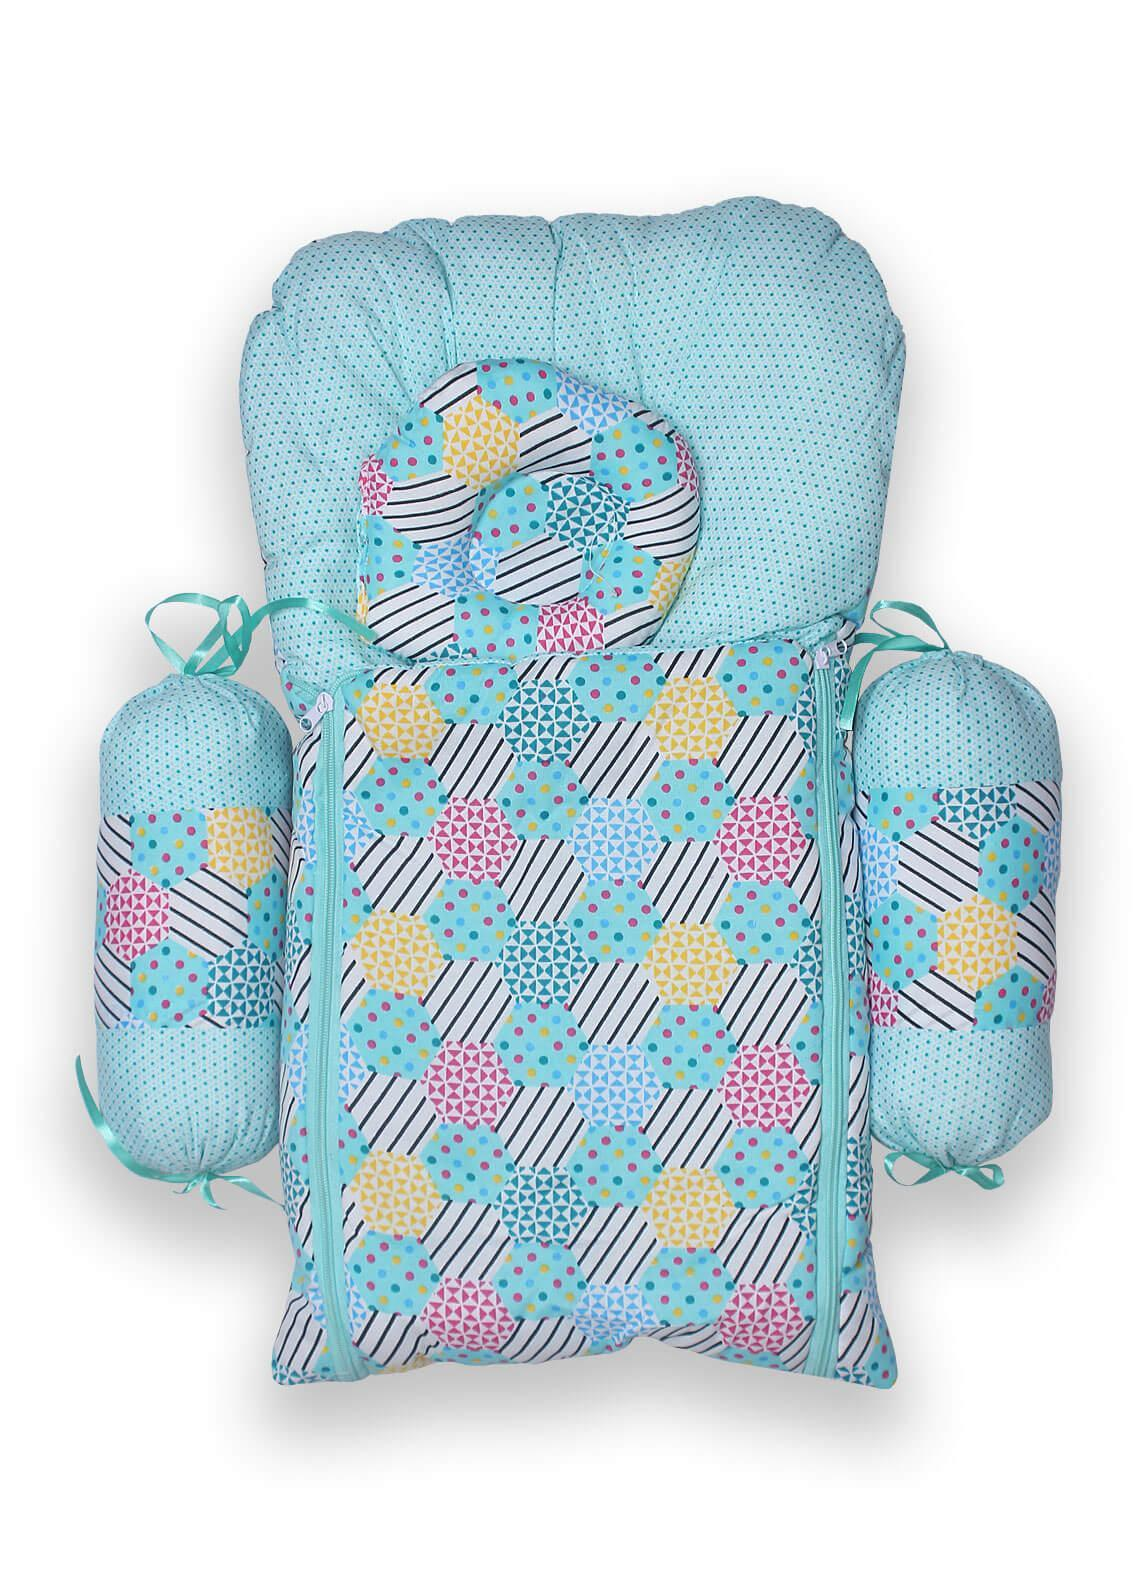 Plush Mink Poly Fiber Carrier Set 4 Pieces PEEKABOO CARRIER SET WITH BOLSTERS (4 Pieces Set) Blue - Baby Products